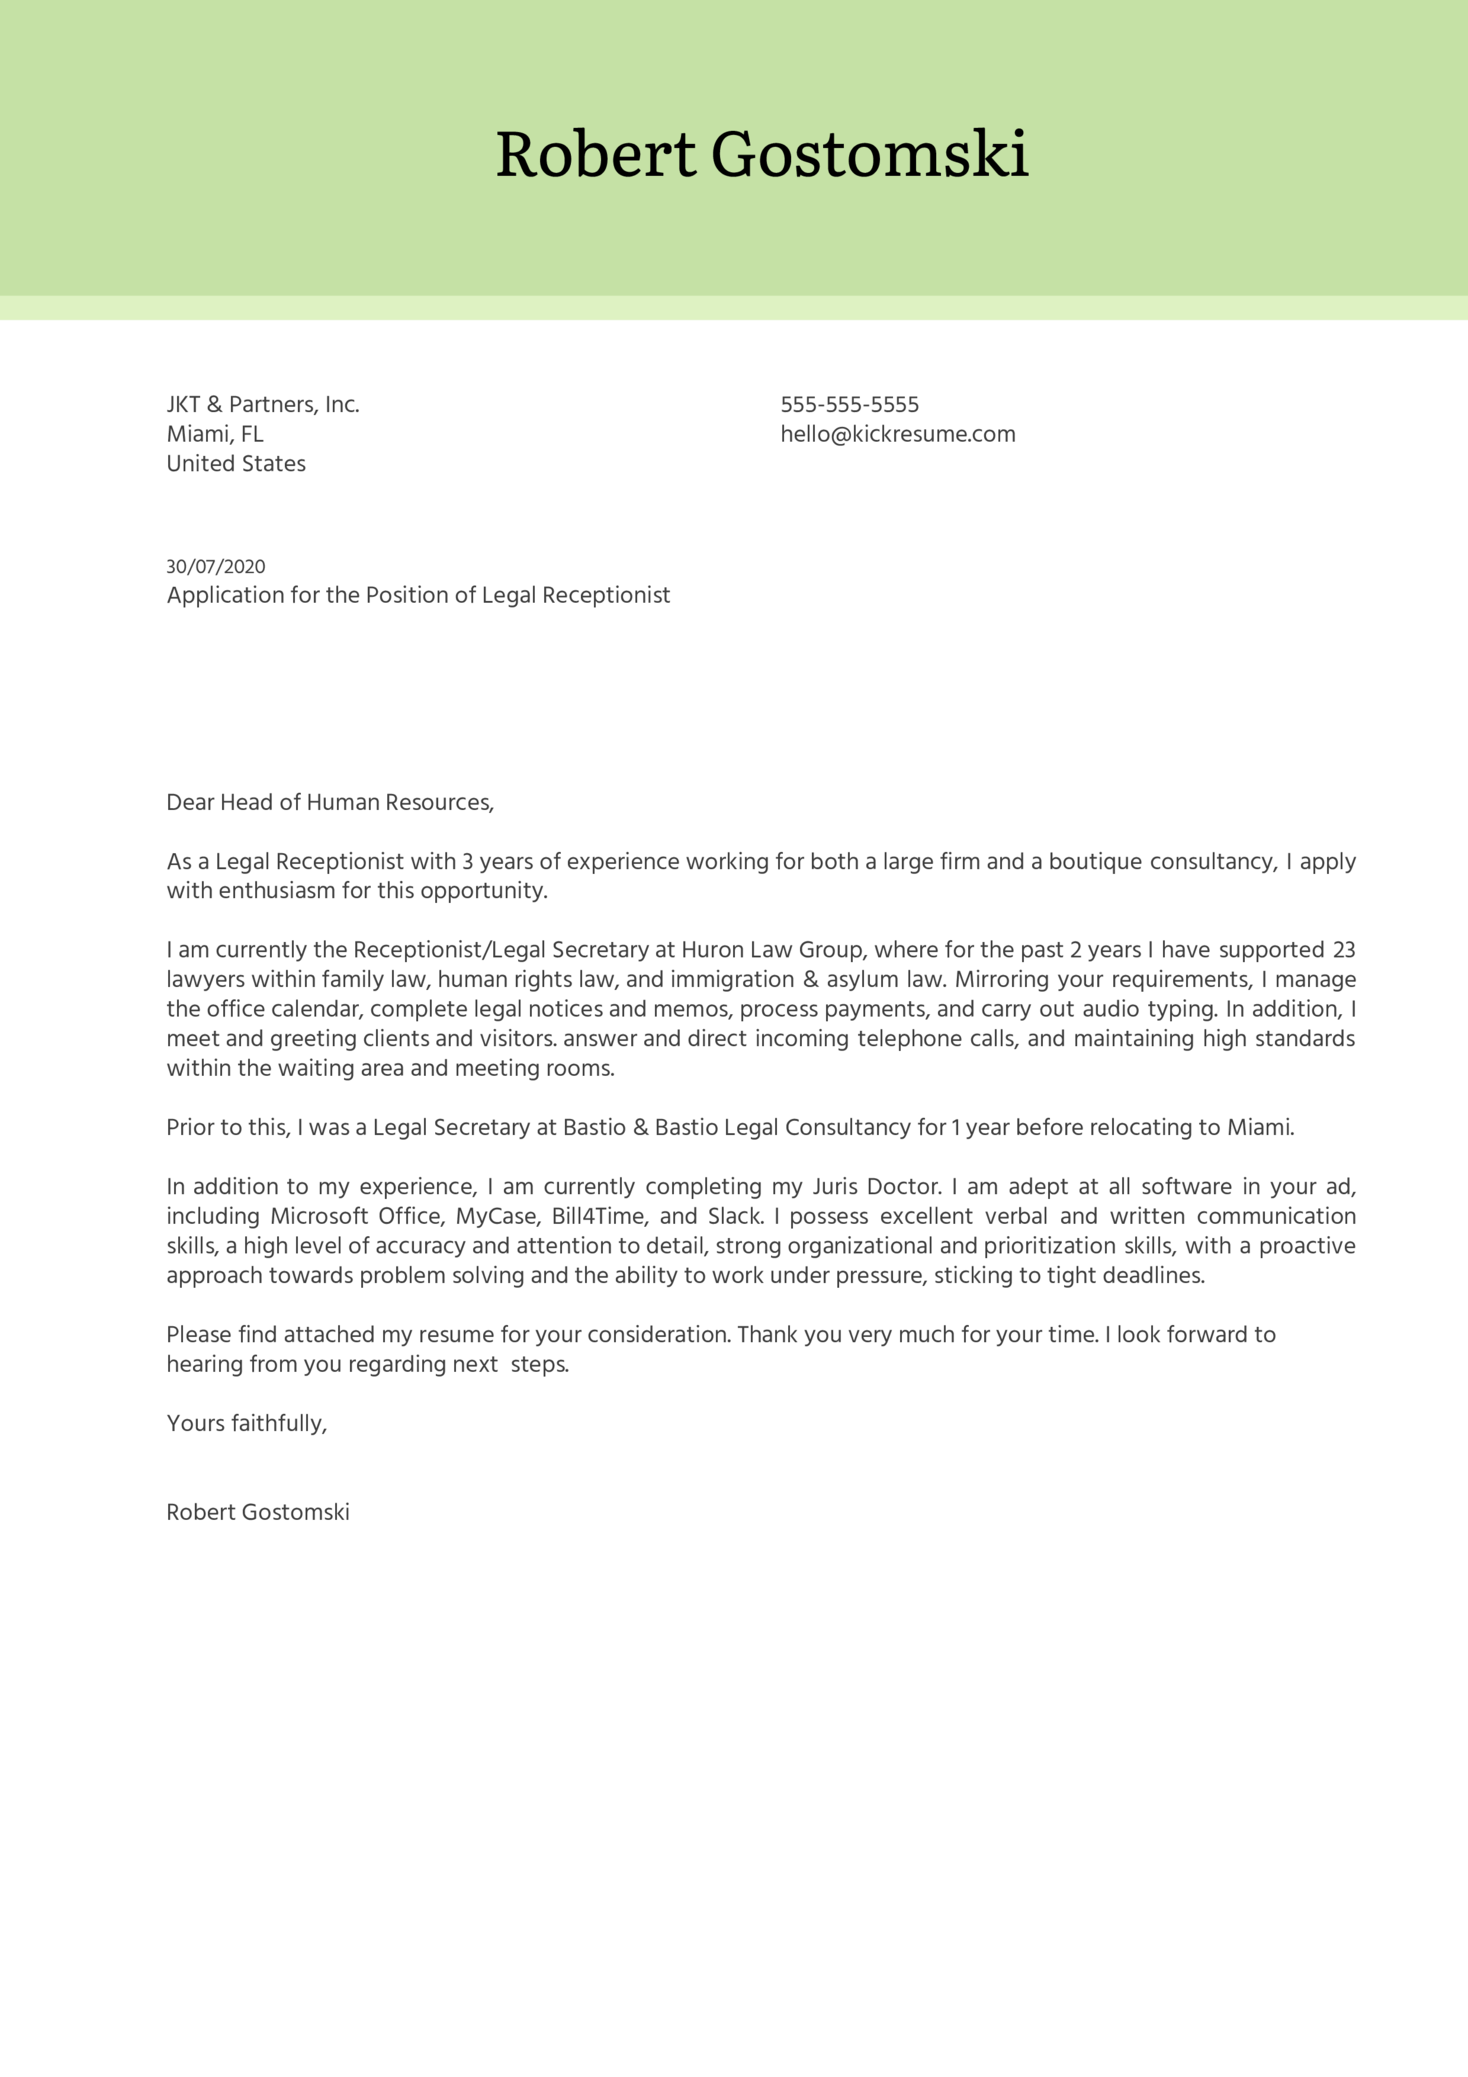 Cover Letter Template Receptionist from s3-eu-west-1.amazonaws.com